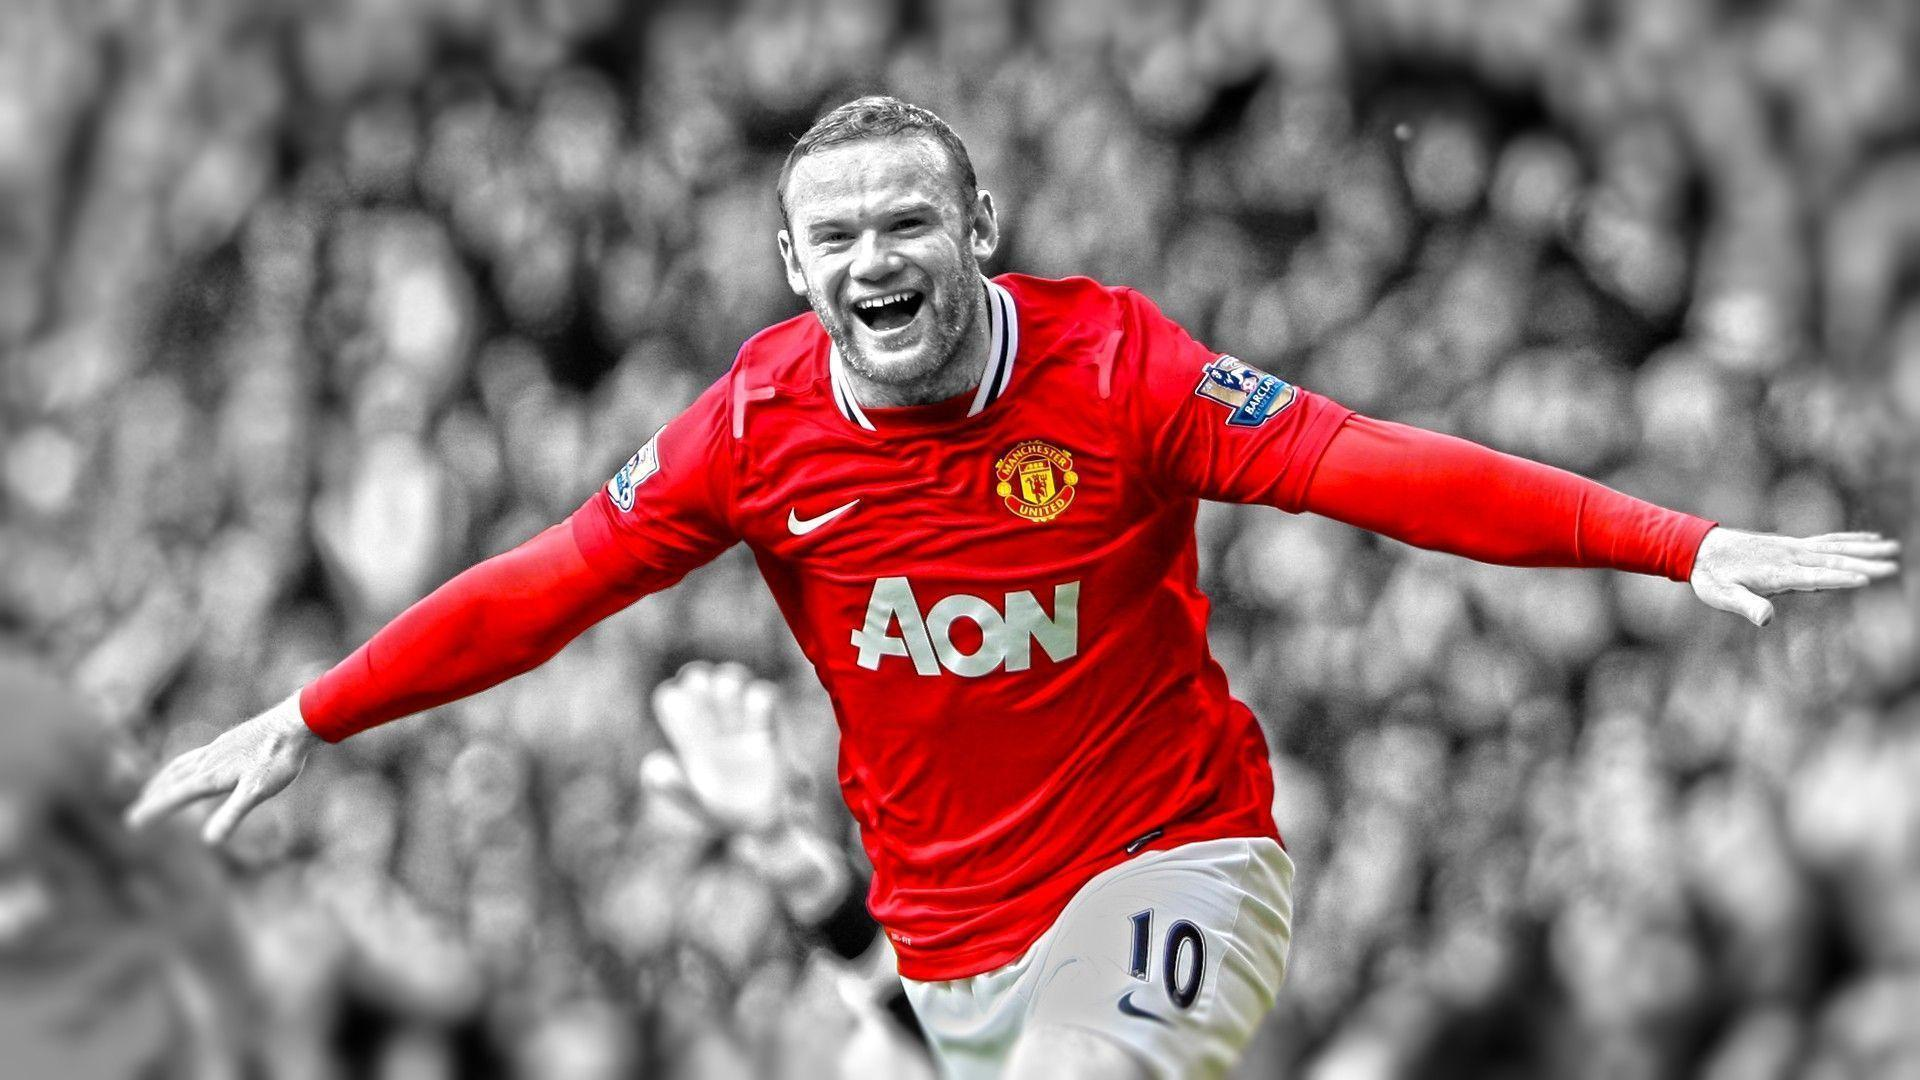 wayne rooney wallpapers 2016 wallpaper cave